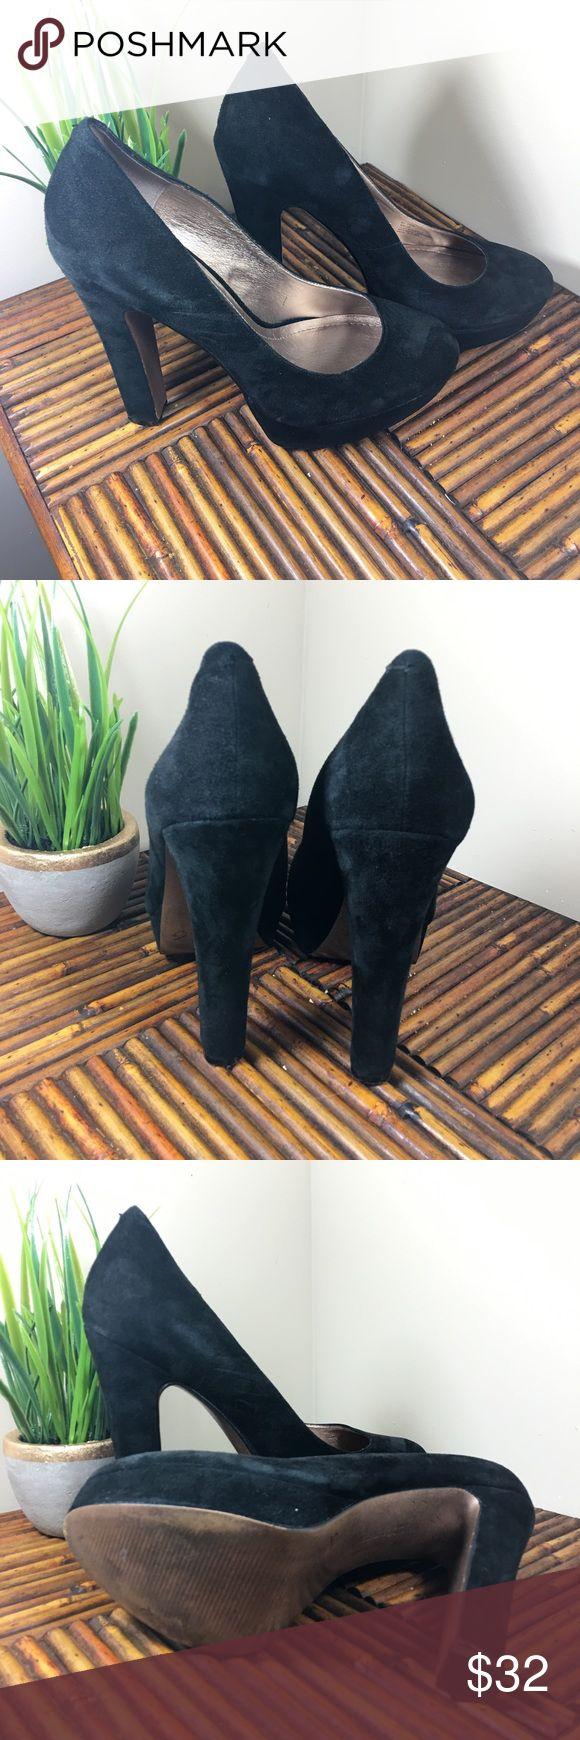 "BCBG Jodie Black Suede Pump Great Condition. Black suede. 5 1/2"" Heel and 1"" Platform. BCBGeneration Shoes Platforms"